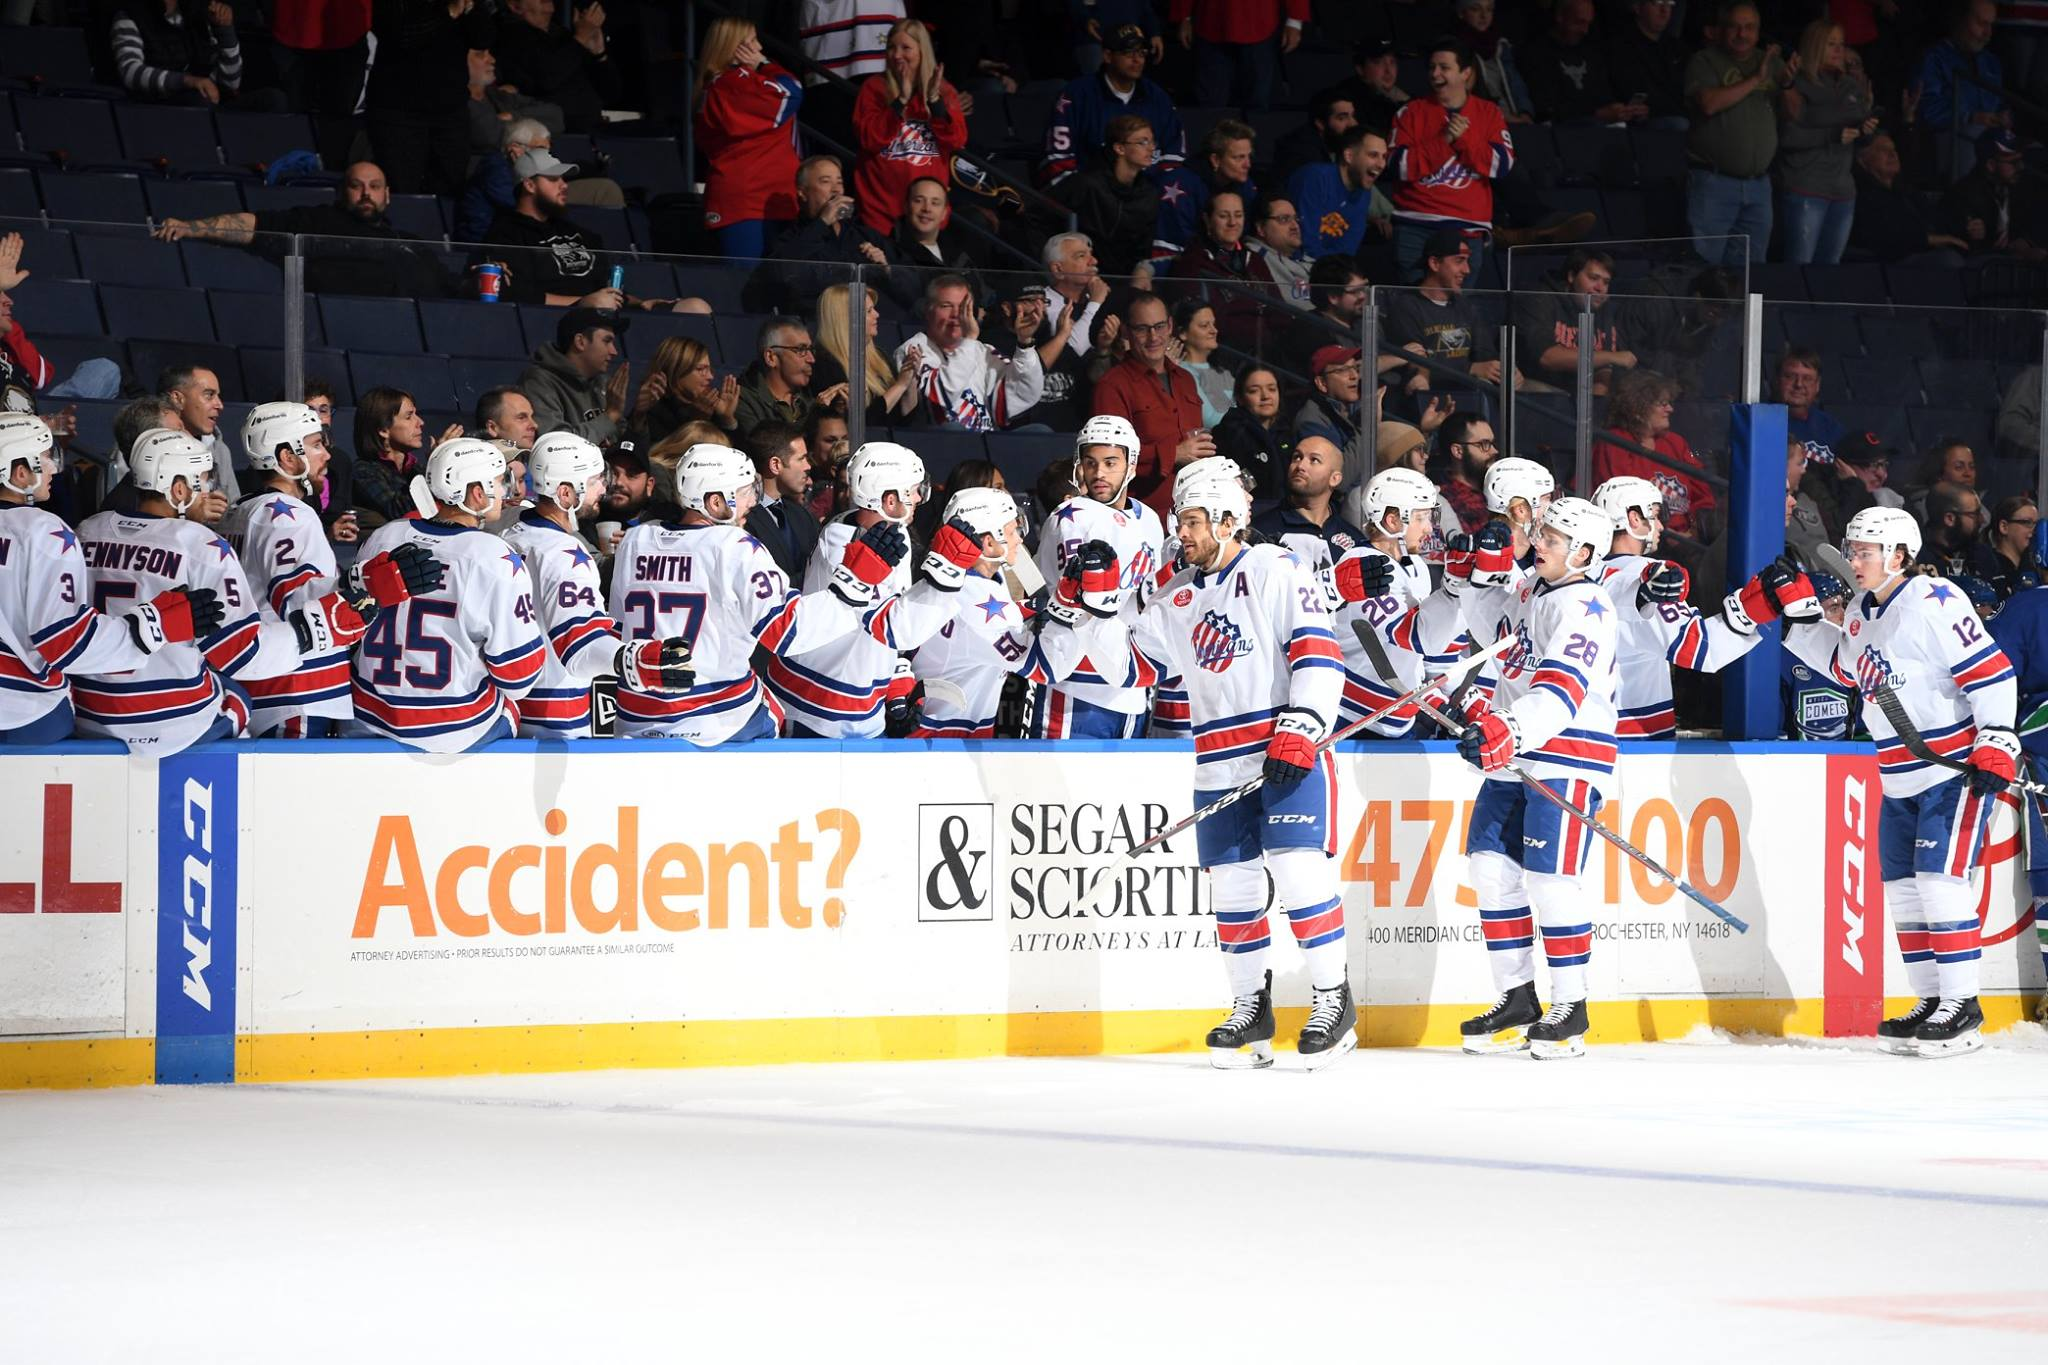 Recap of 2018-2019 Amerks Regular Season Stats